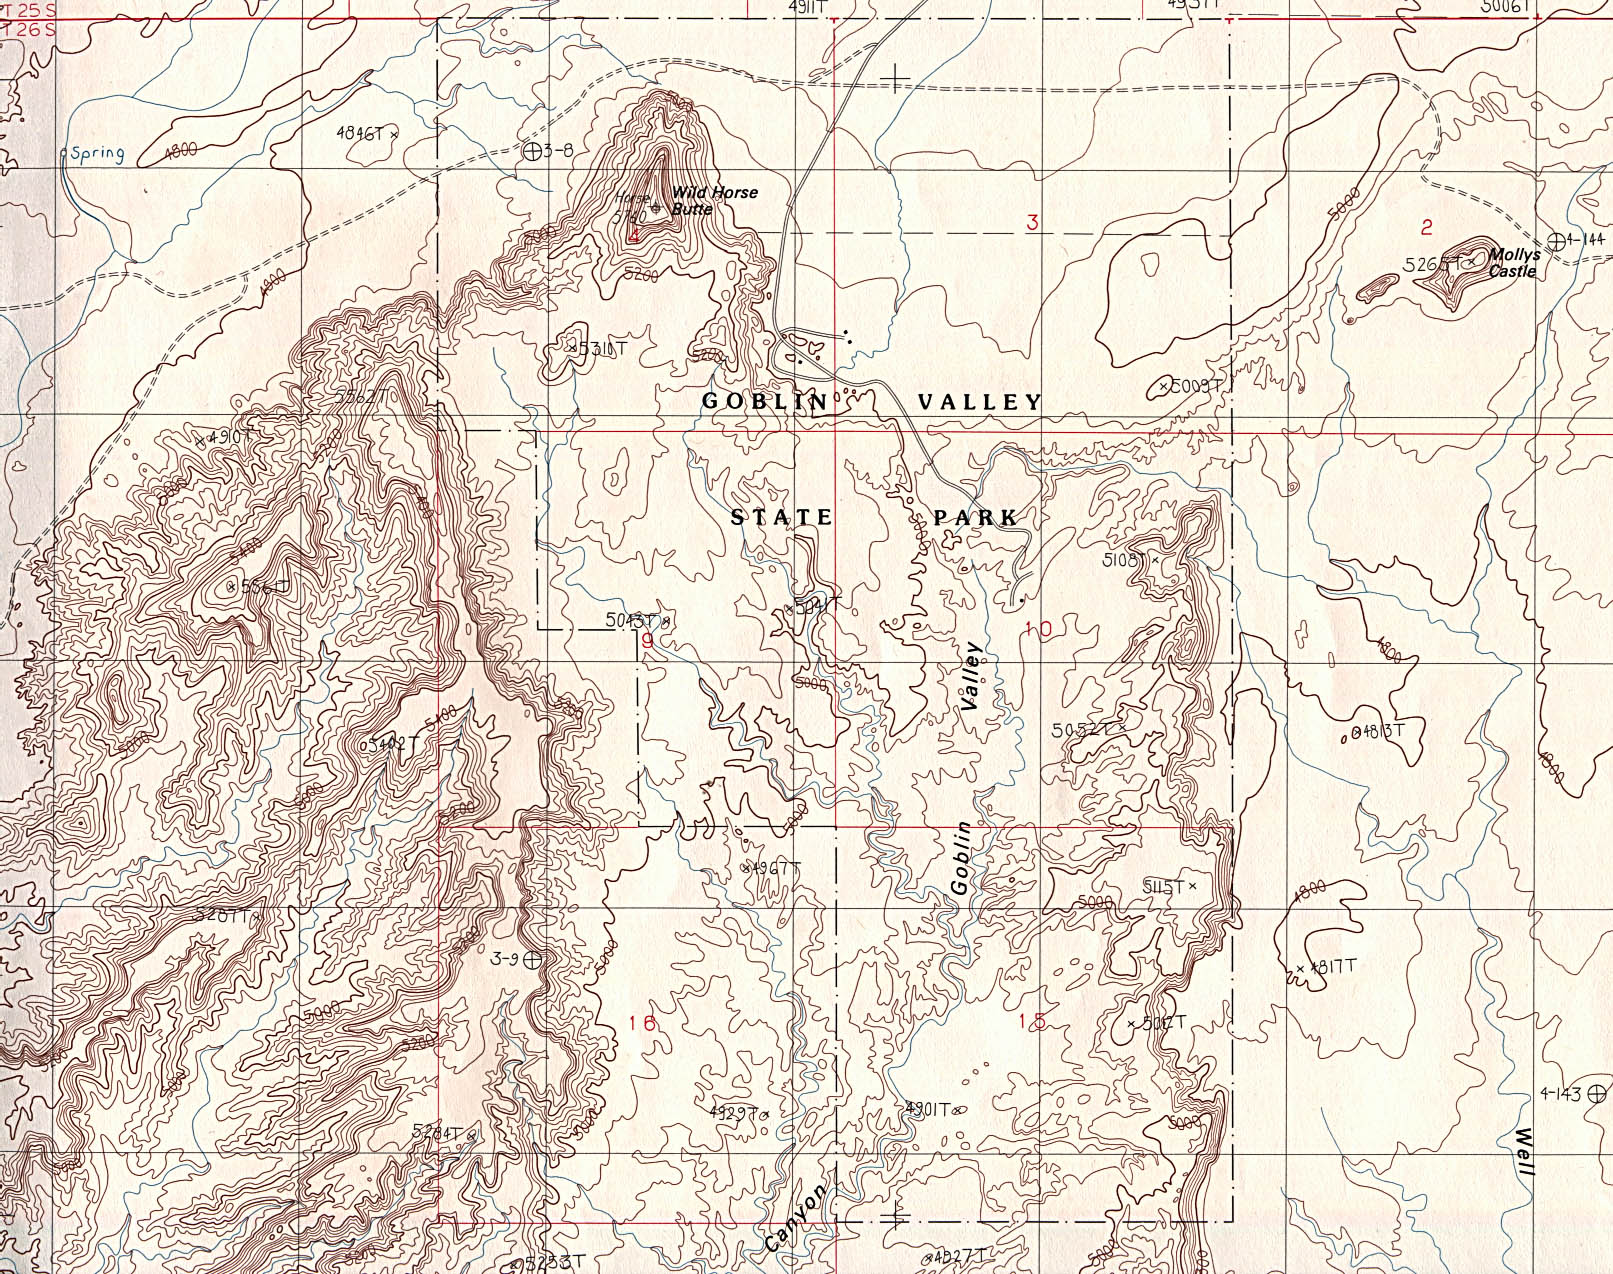 Utah Maps Map Collection UT - Utah maps